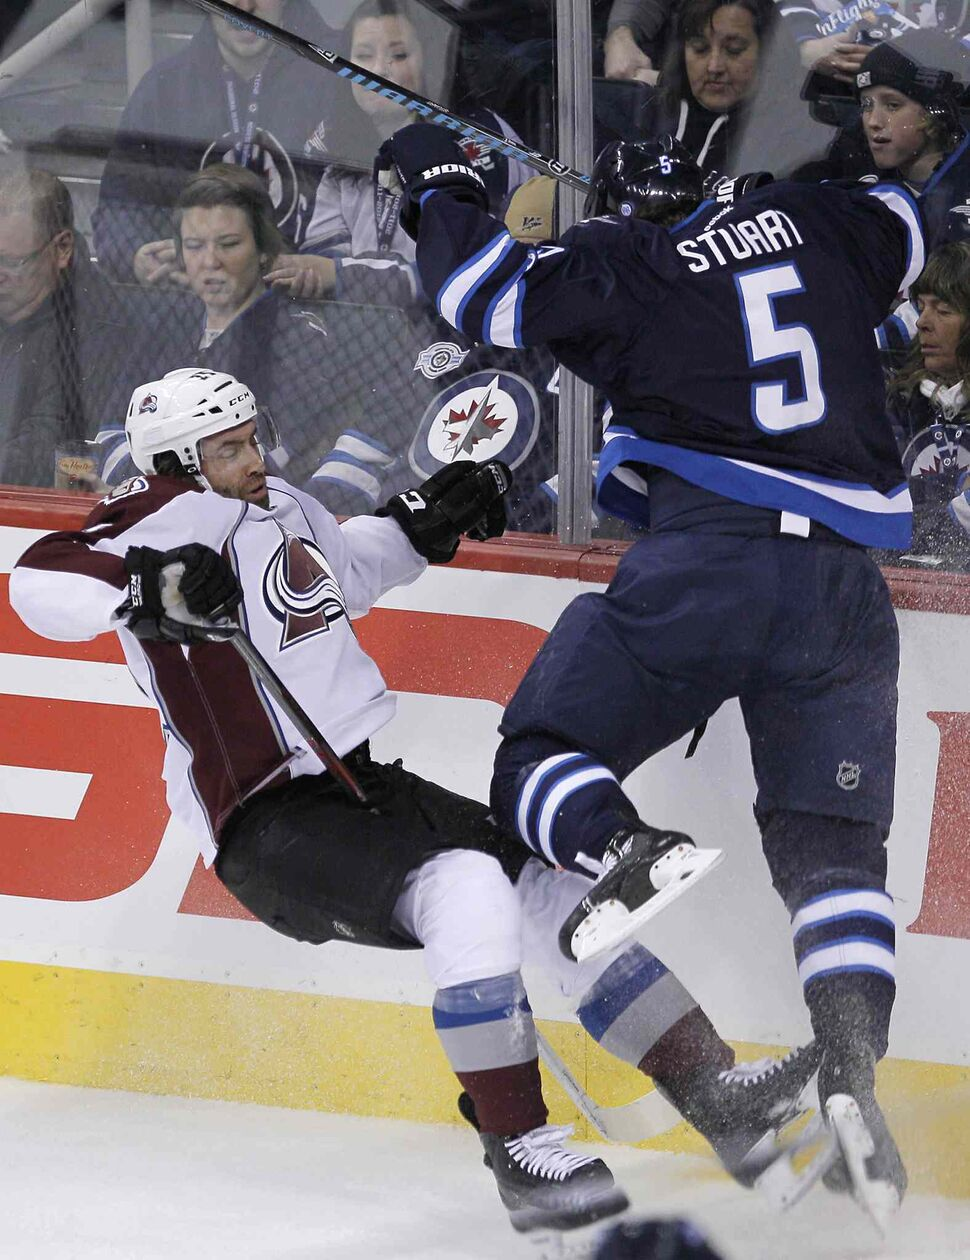 Mark Stuart (right) hits  Maxime Talbot of the Colorado Avalanche during the first period. (JOHN WOODS / THE CANADIAN PRESS)